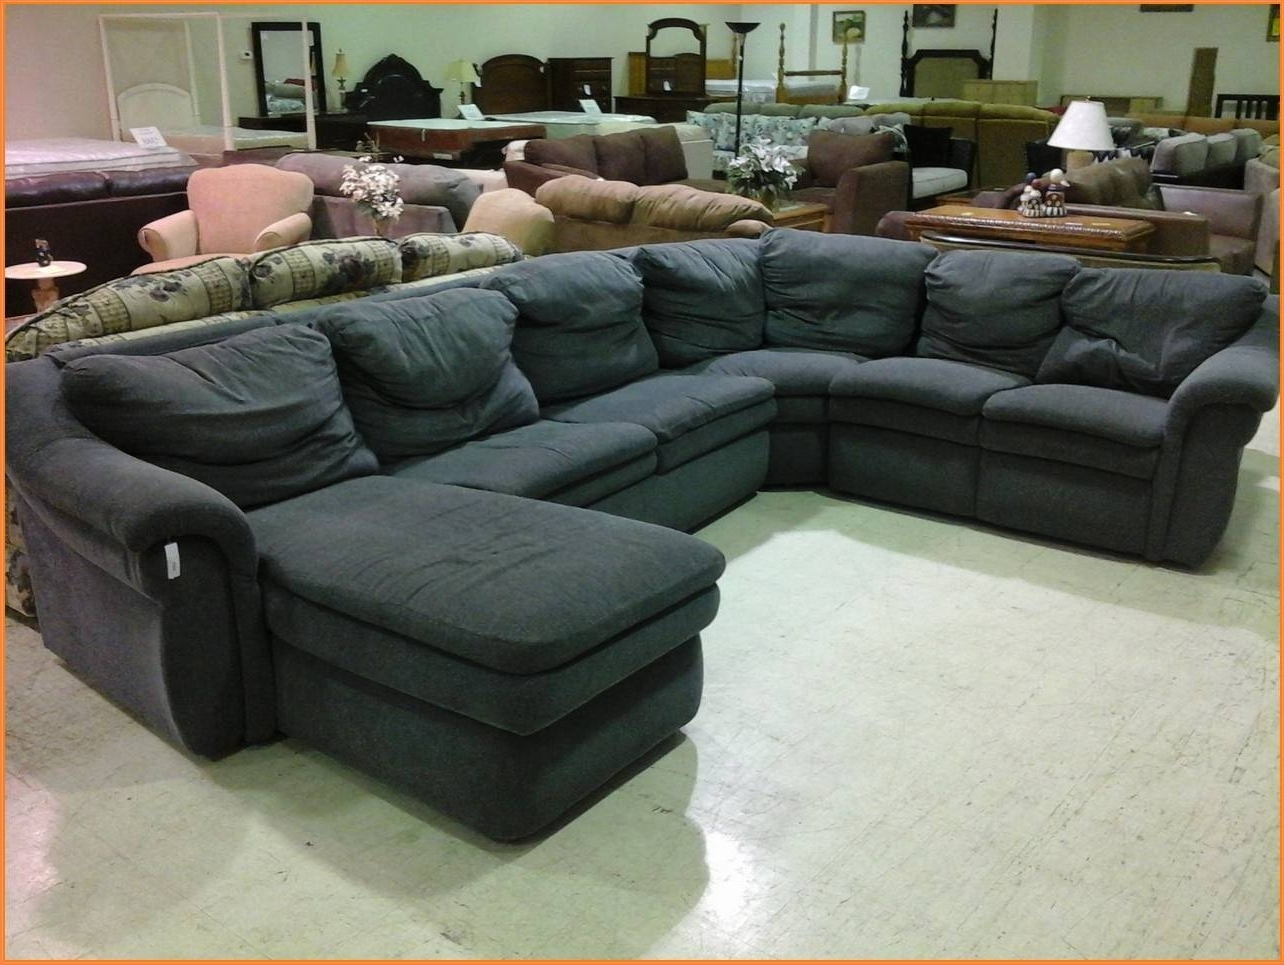 Most Recently Released Lazy Boy Sectional Sofas Intended For Charming Lazy Boy Sectional Sleeper Sofa 96 For Malibu Sectional (View 10 of 15)